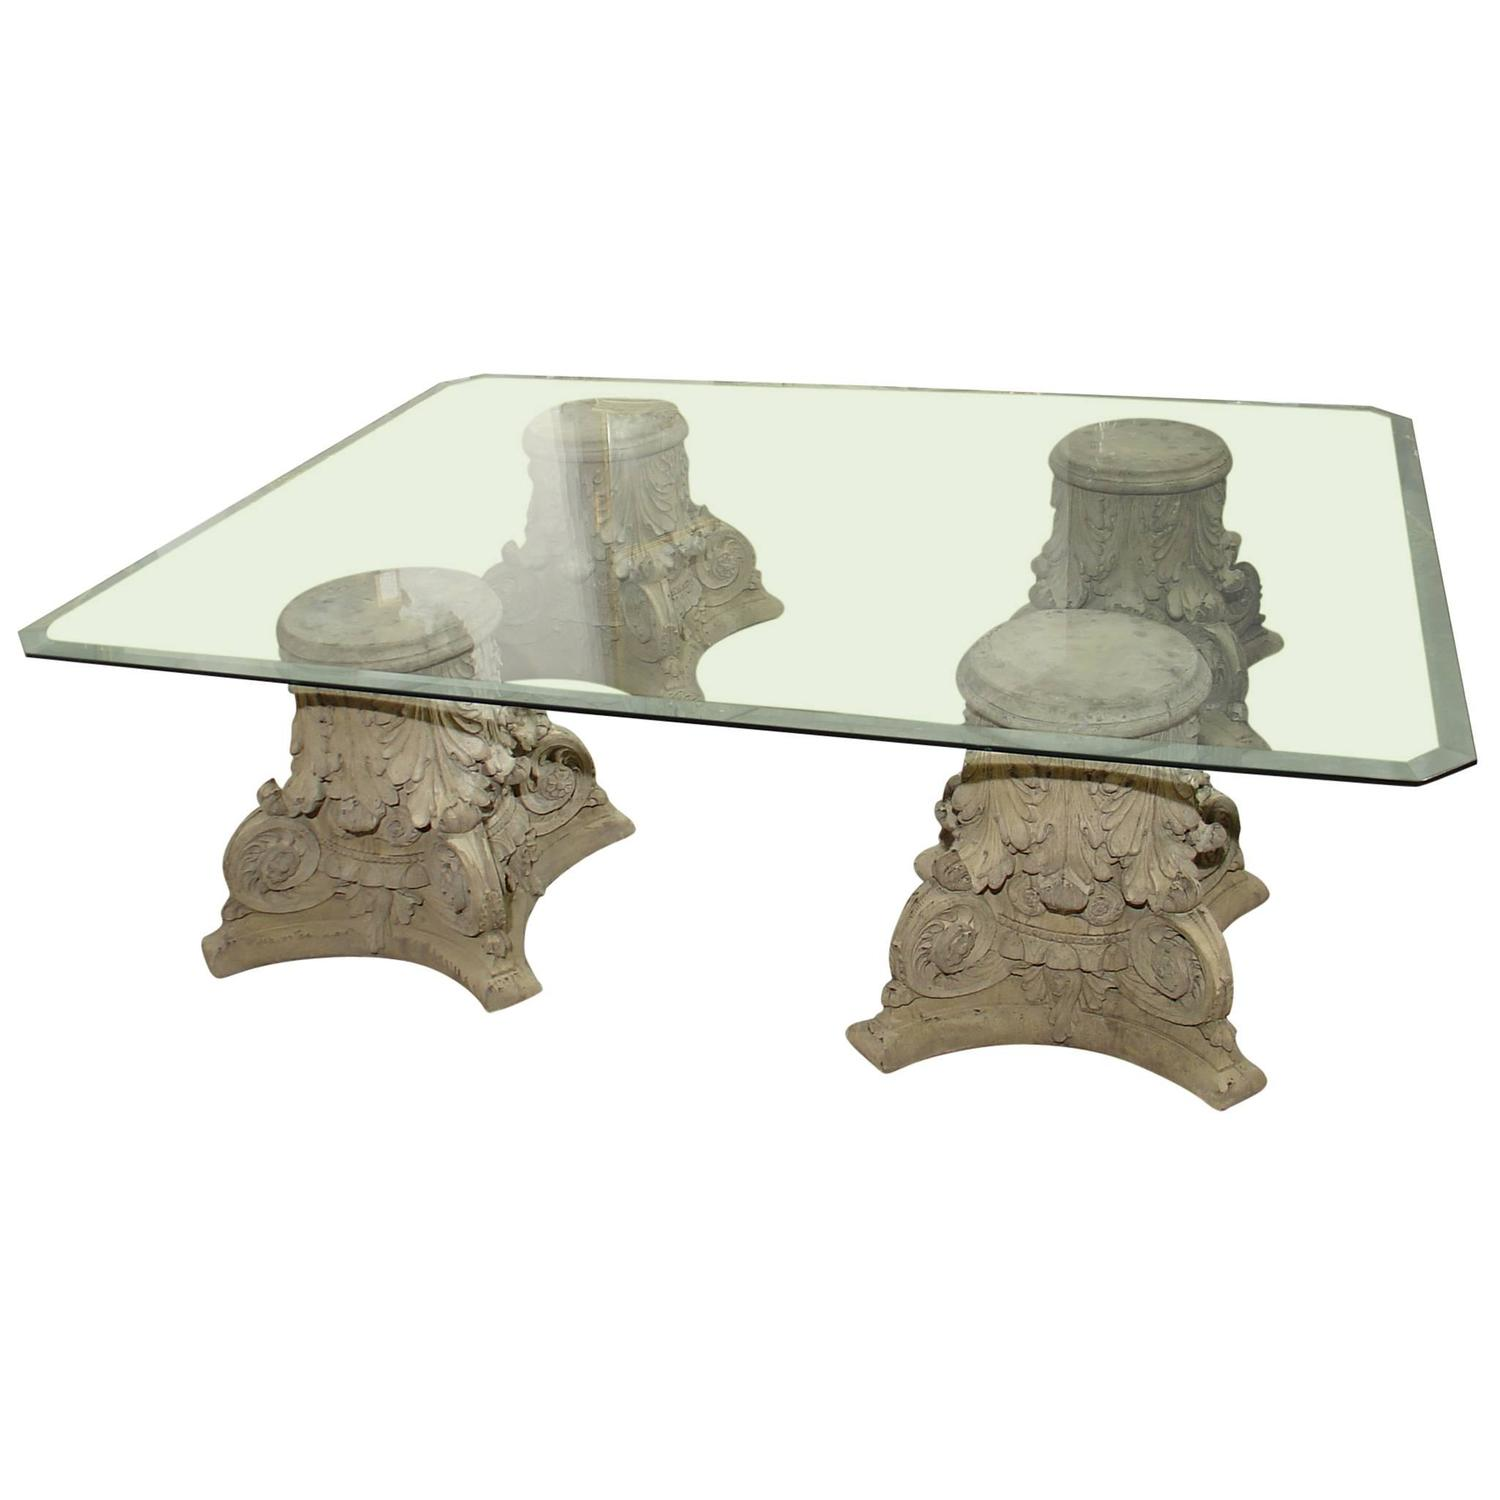 Stone And Glass Coffee Tables: Beveled Glass Top Coffee Table On Cast Stone Corinthian